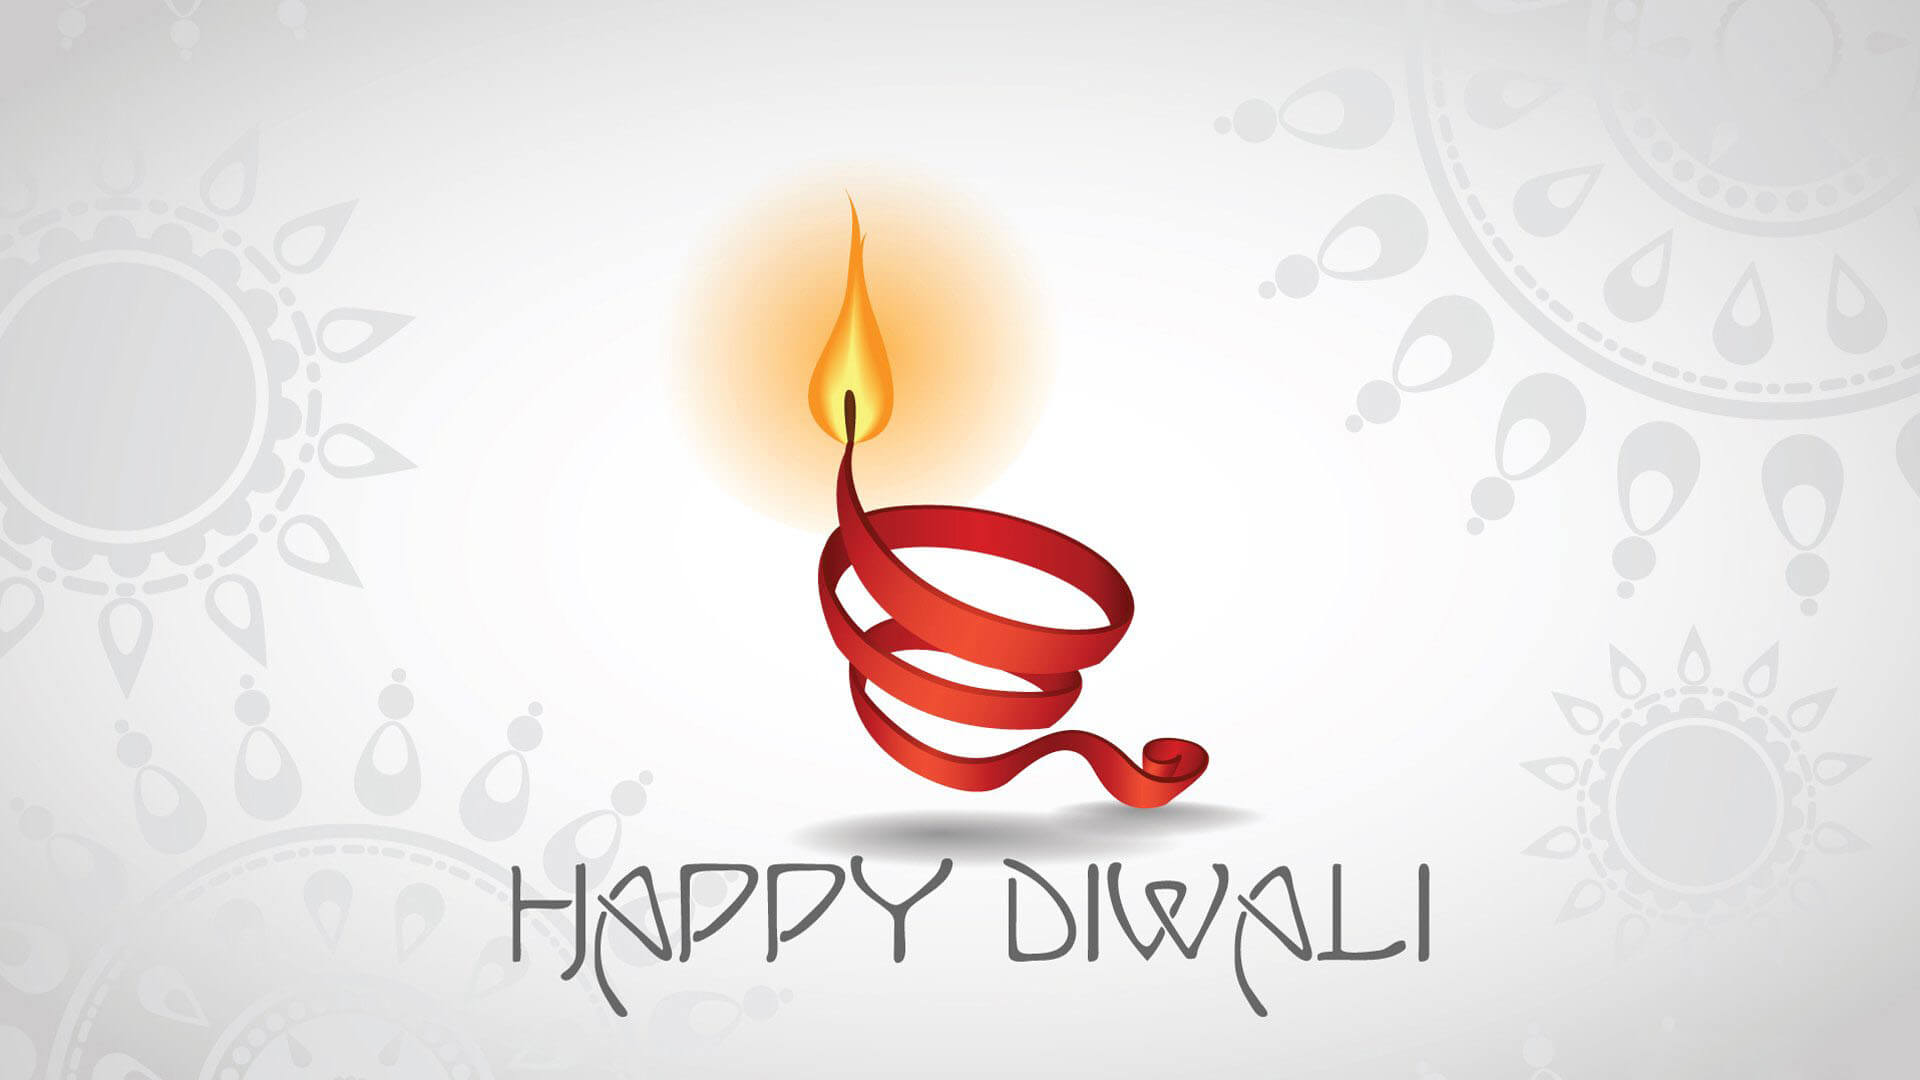 happy diwali deepavali festival of lights hd poster wallpaper